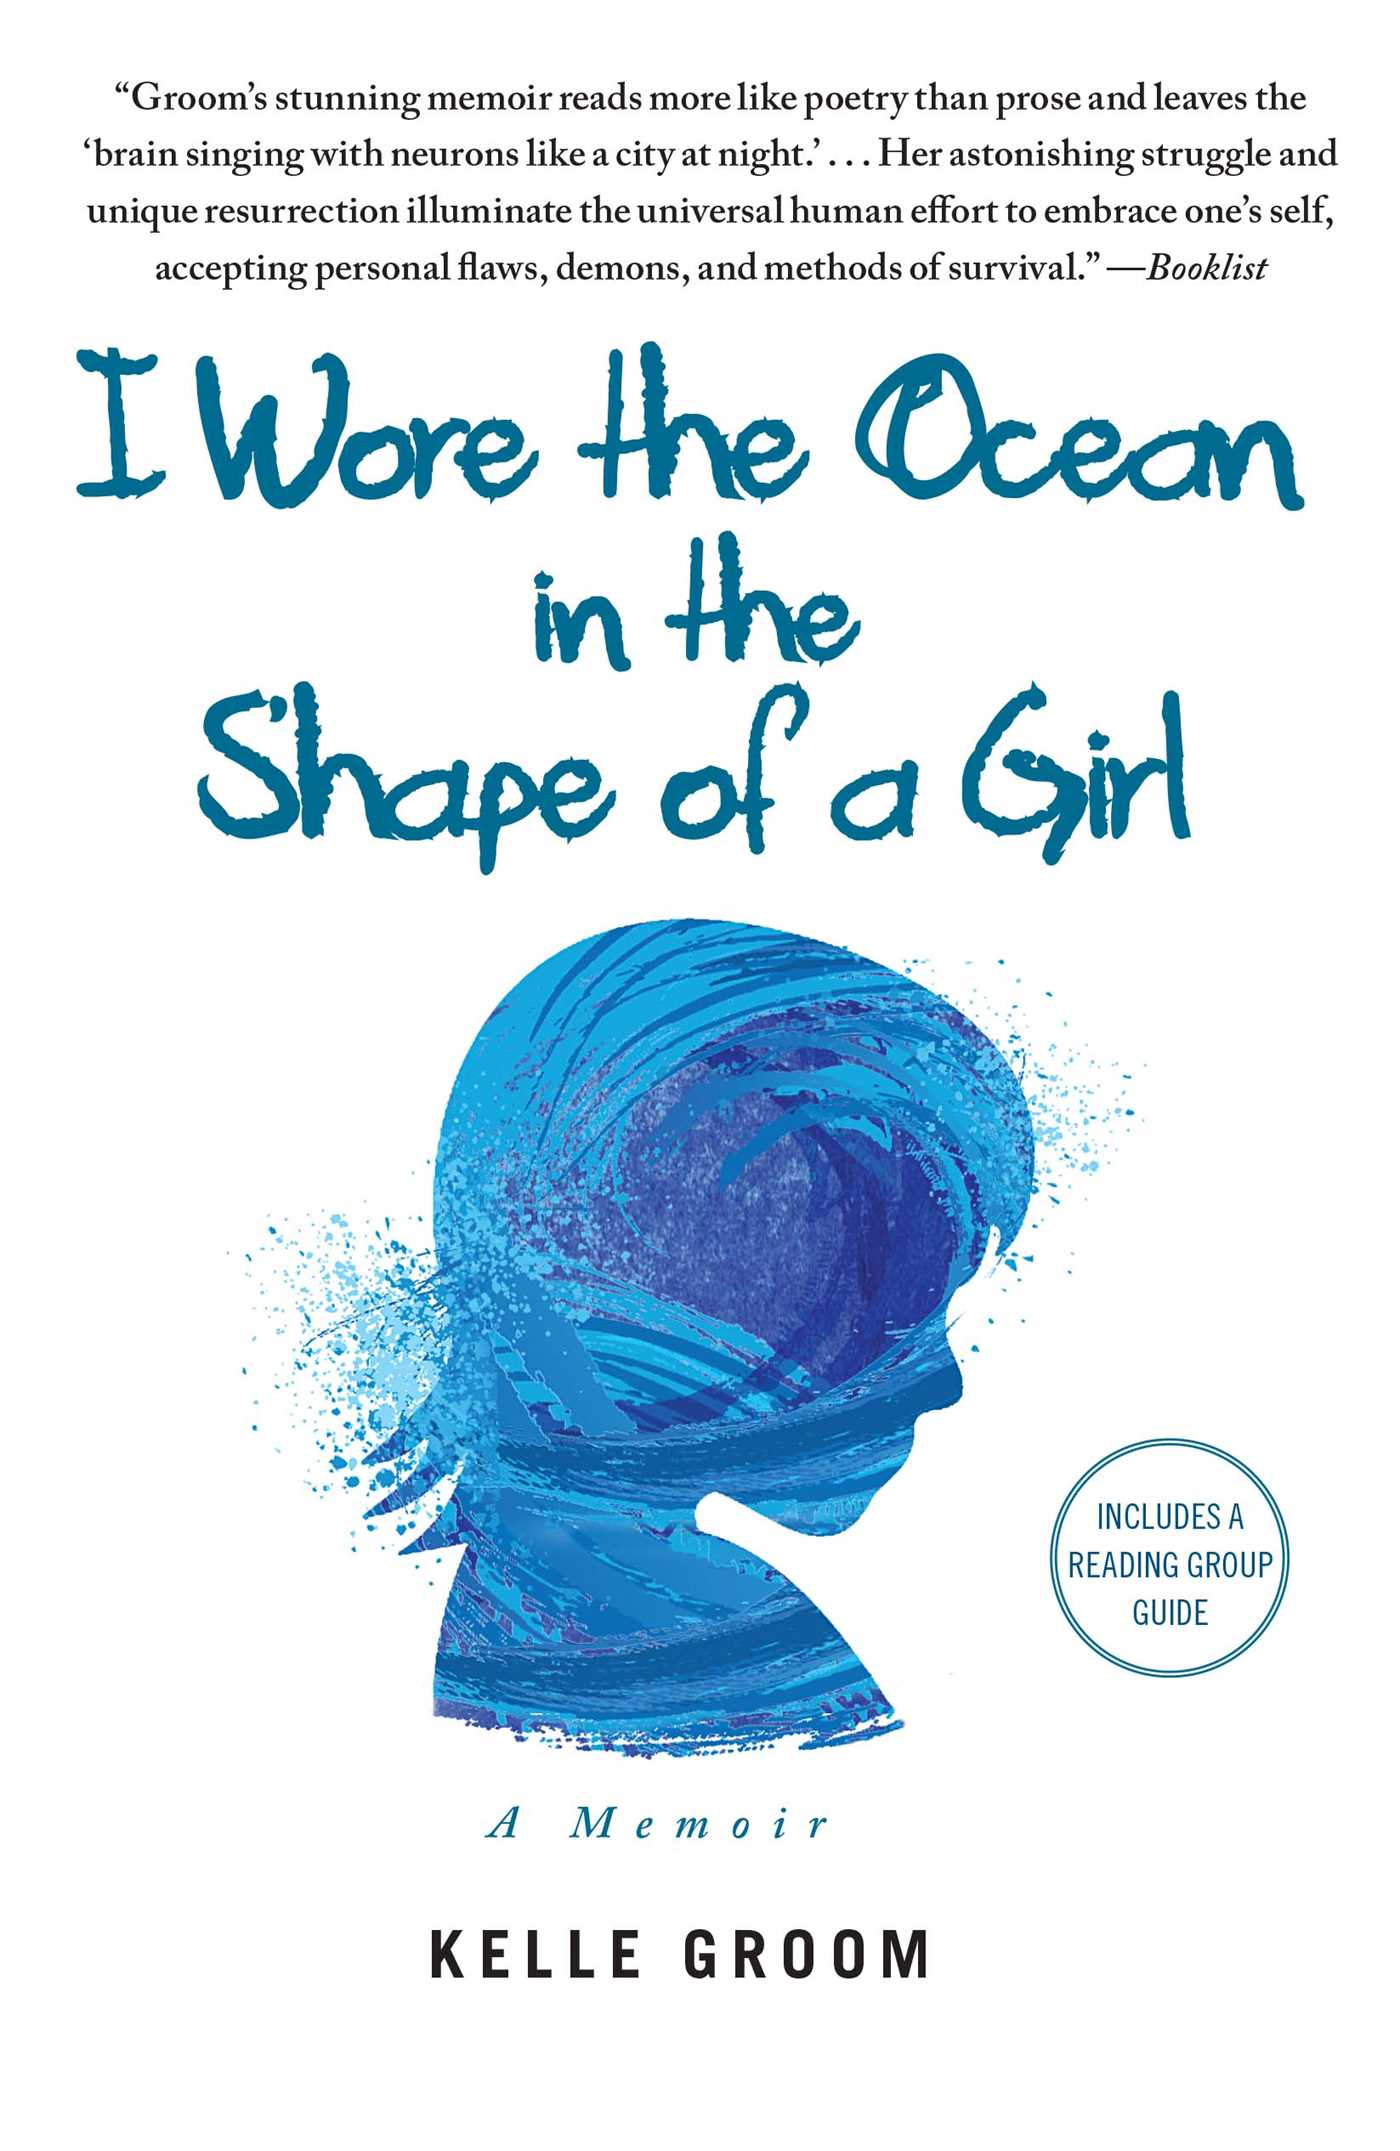 I-wore-the-ocean-in-the-shape-of-a-girl-9781451616699_hr